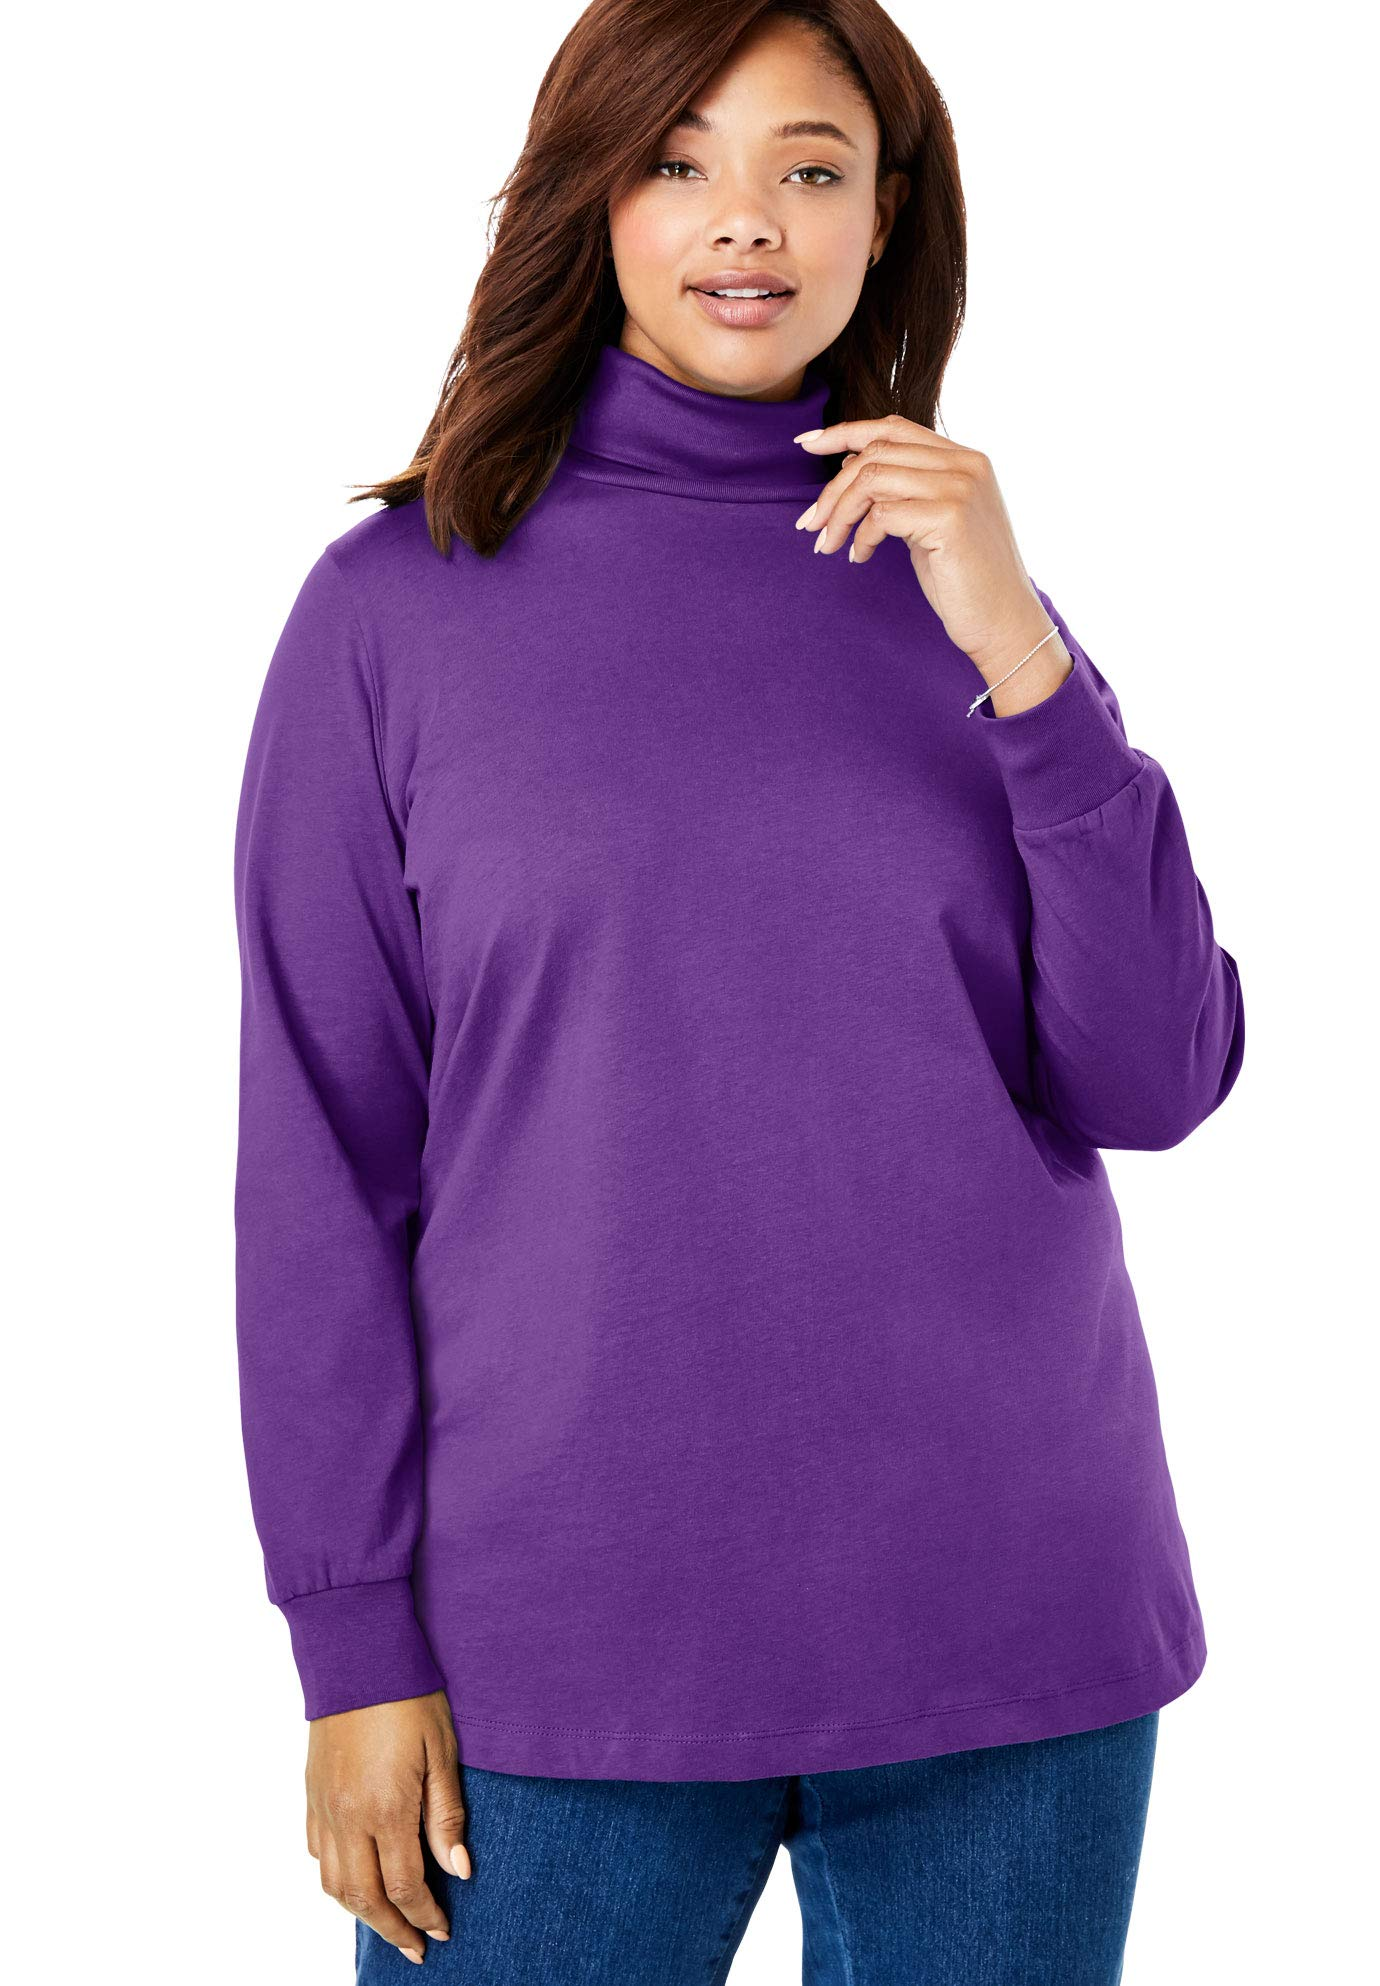 Woman Within Women's Plus Size Perfect Long Sleeve Turtleneck - Radiant Purple, L by Woman Within